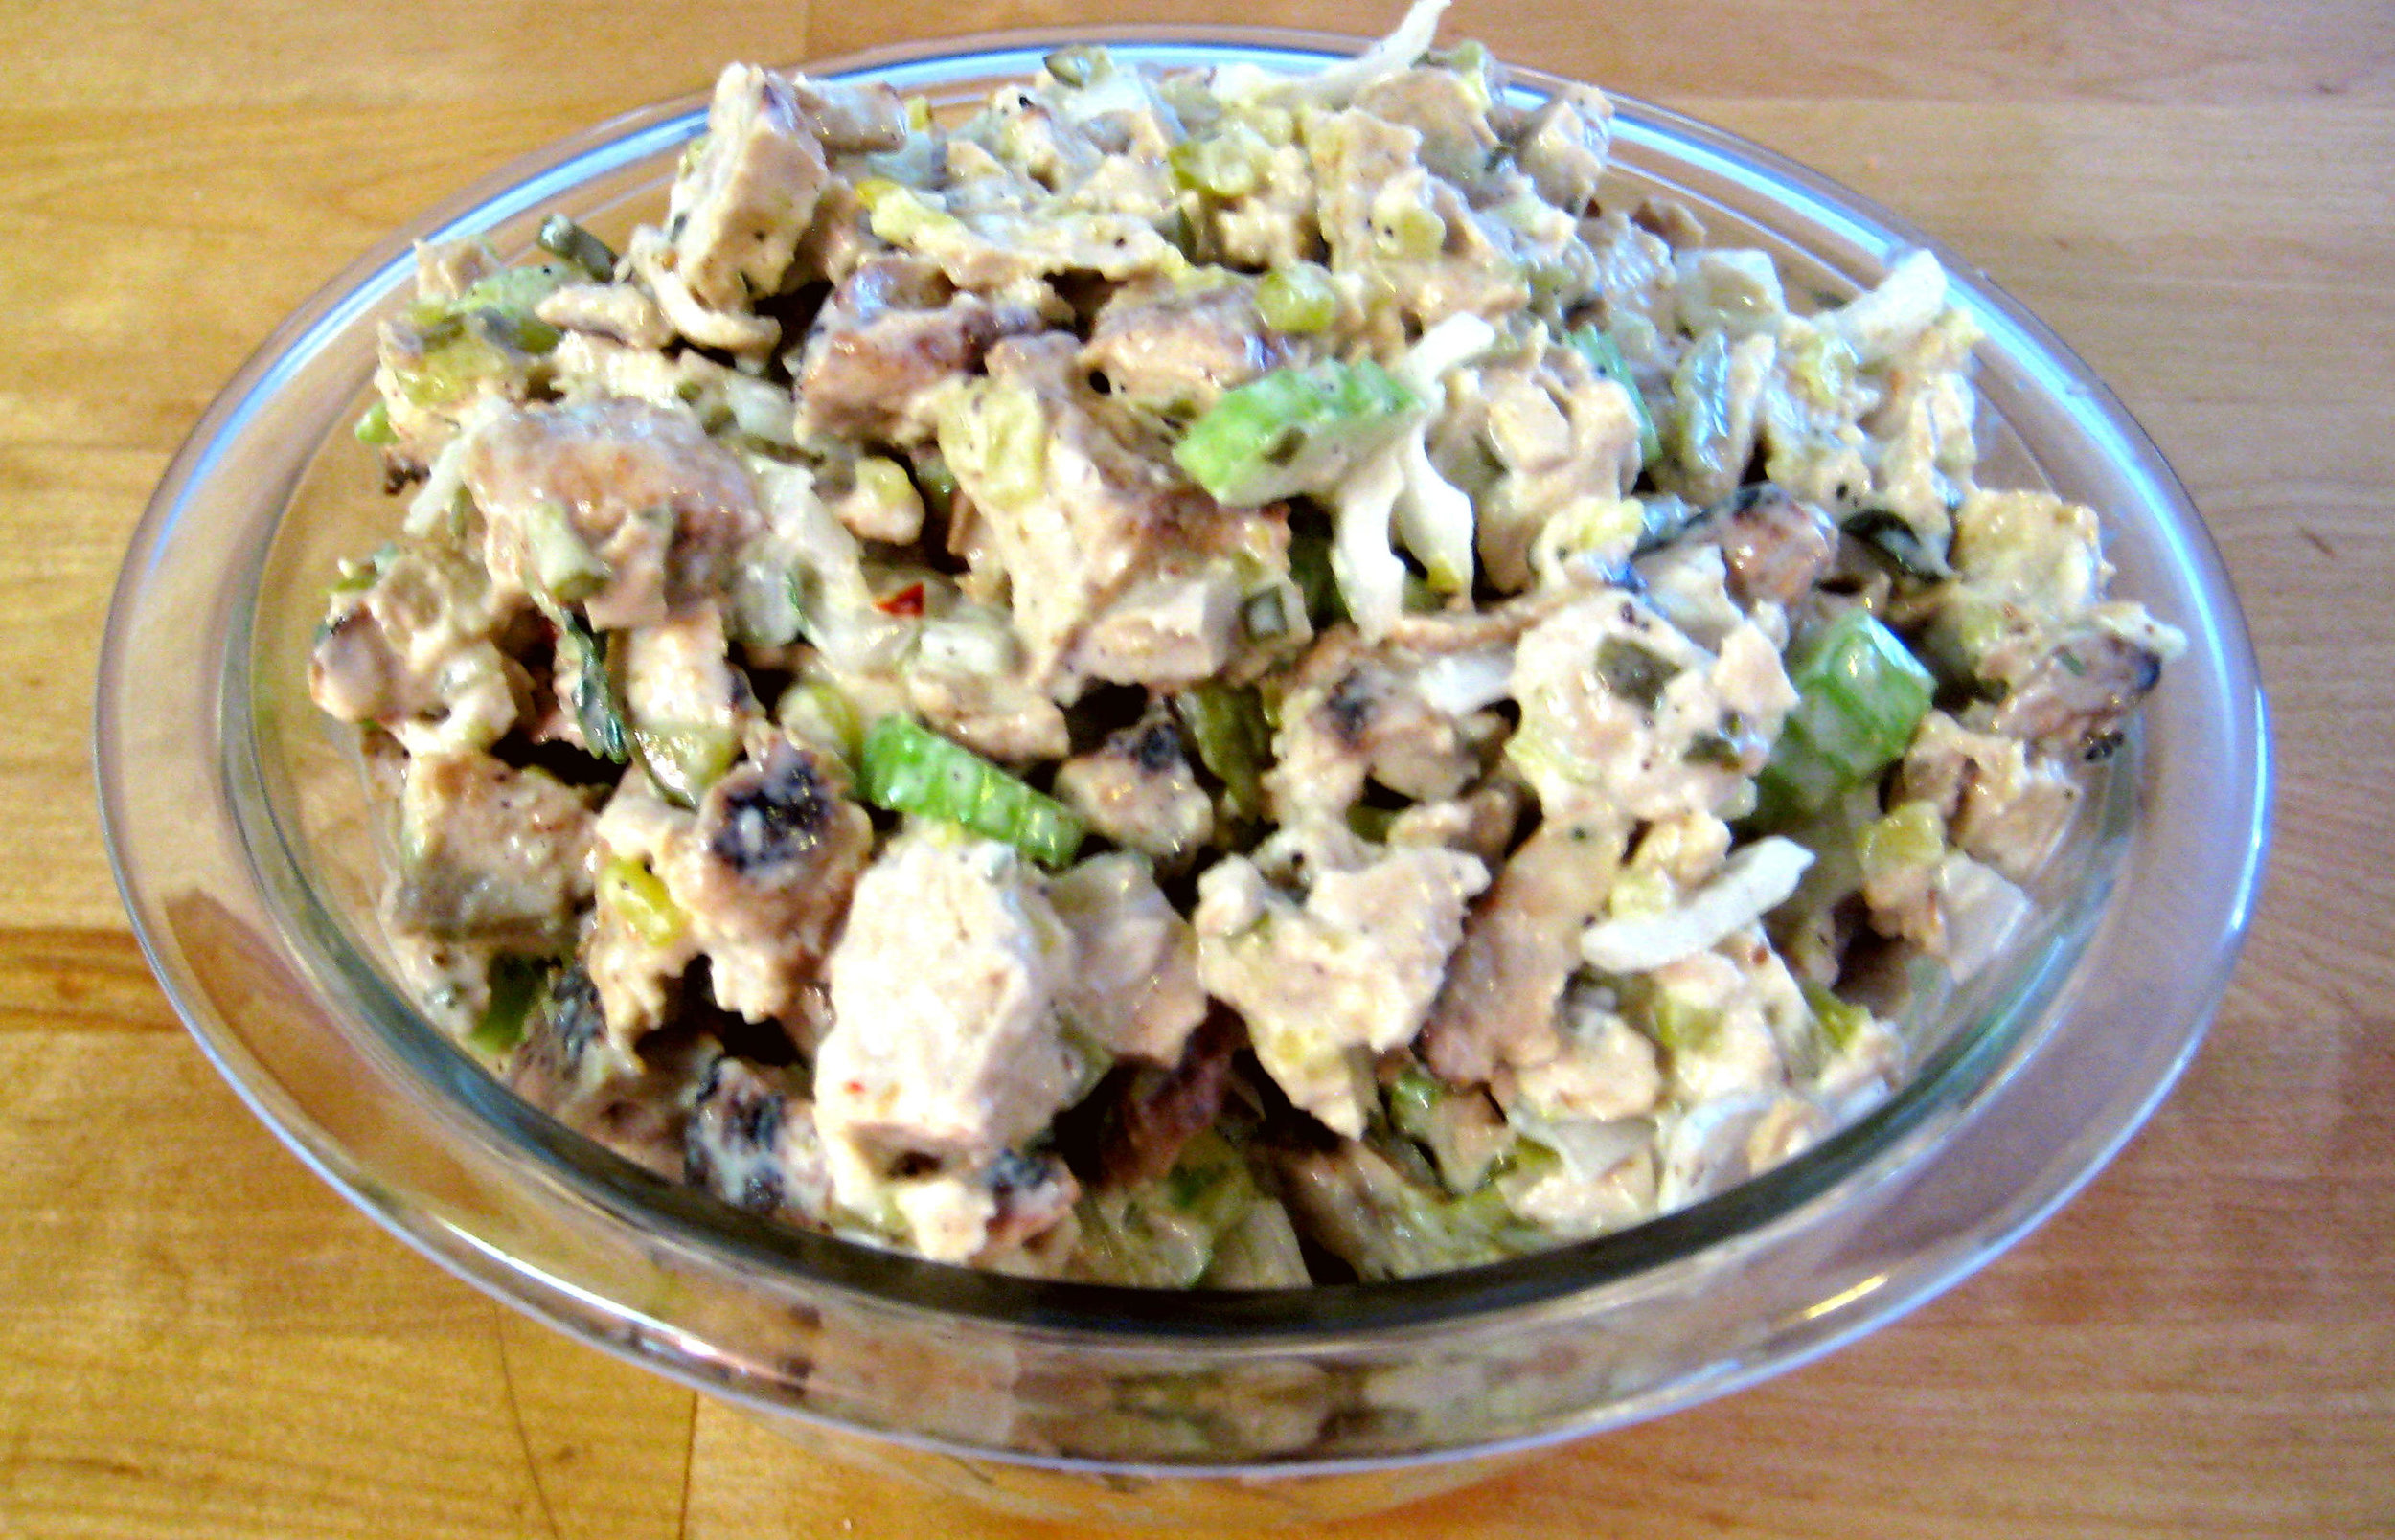 Chick'n or Tuno Salad